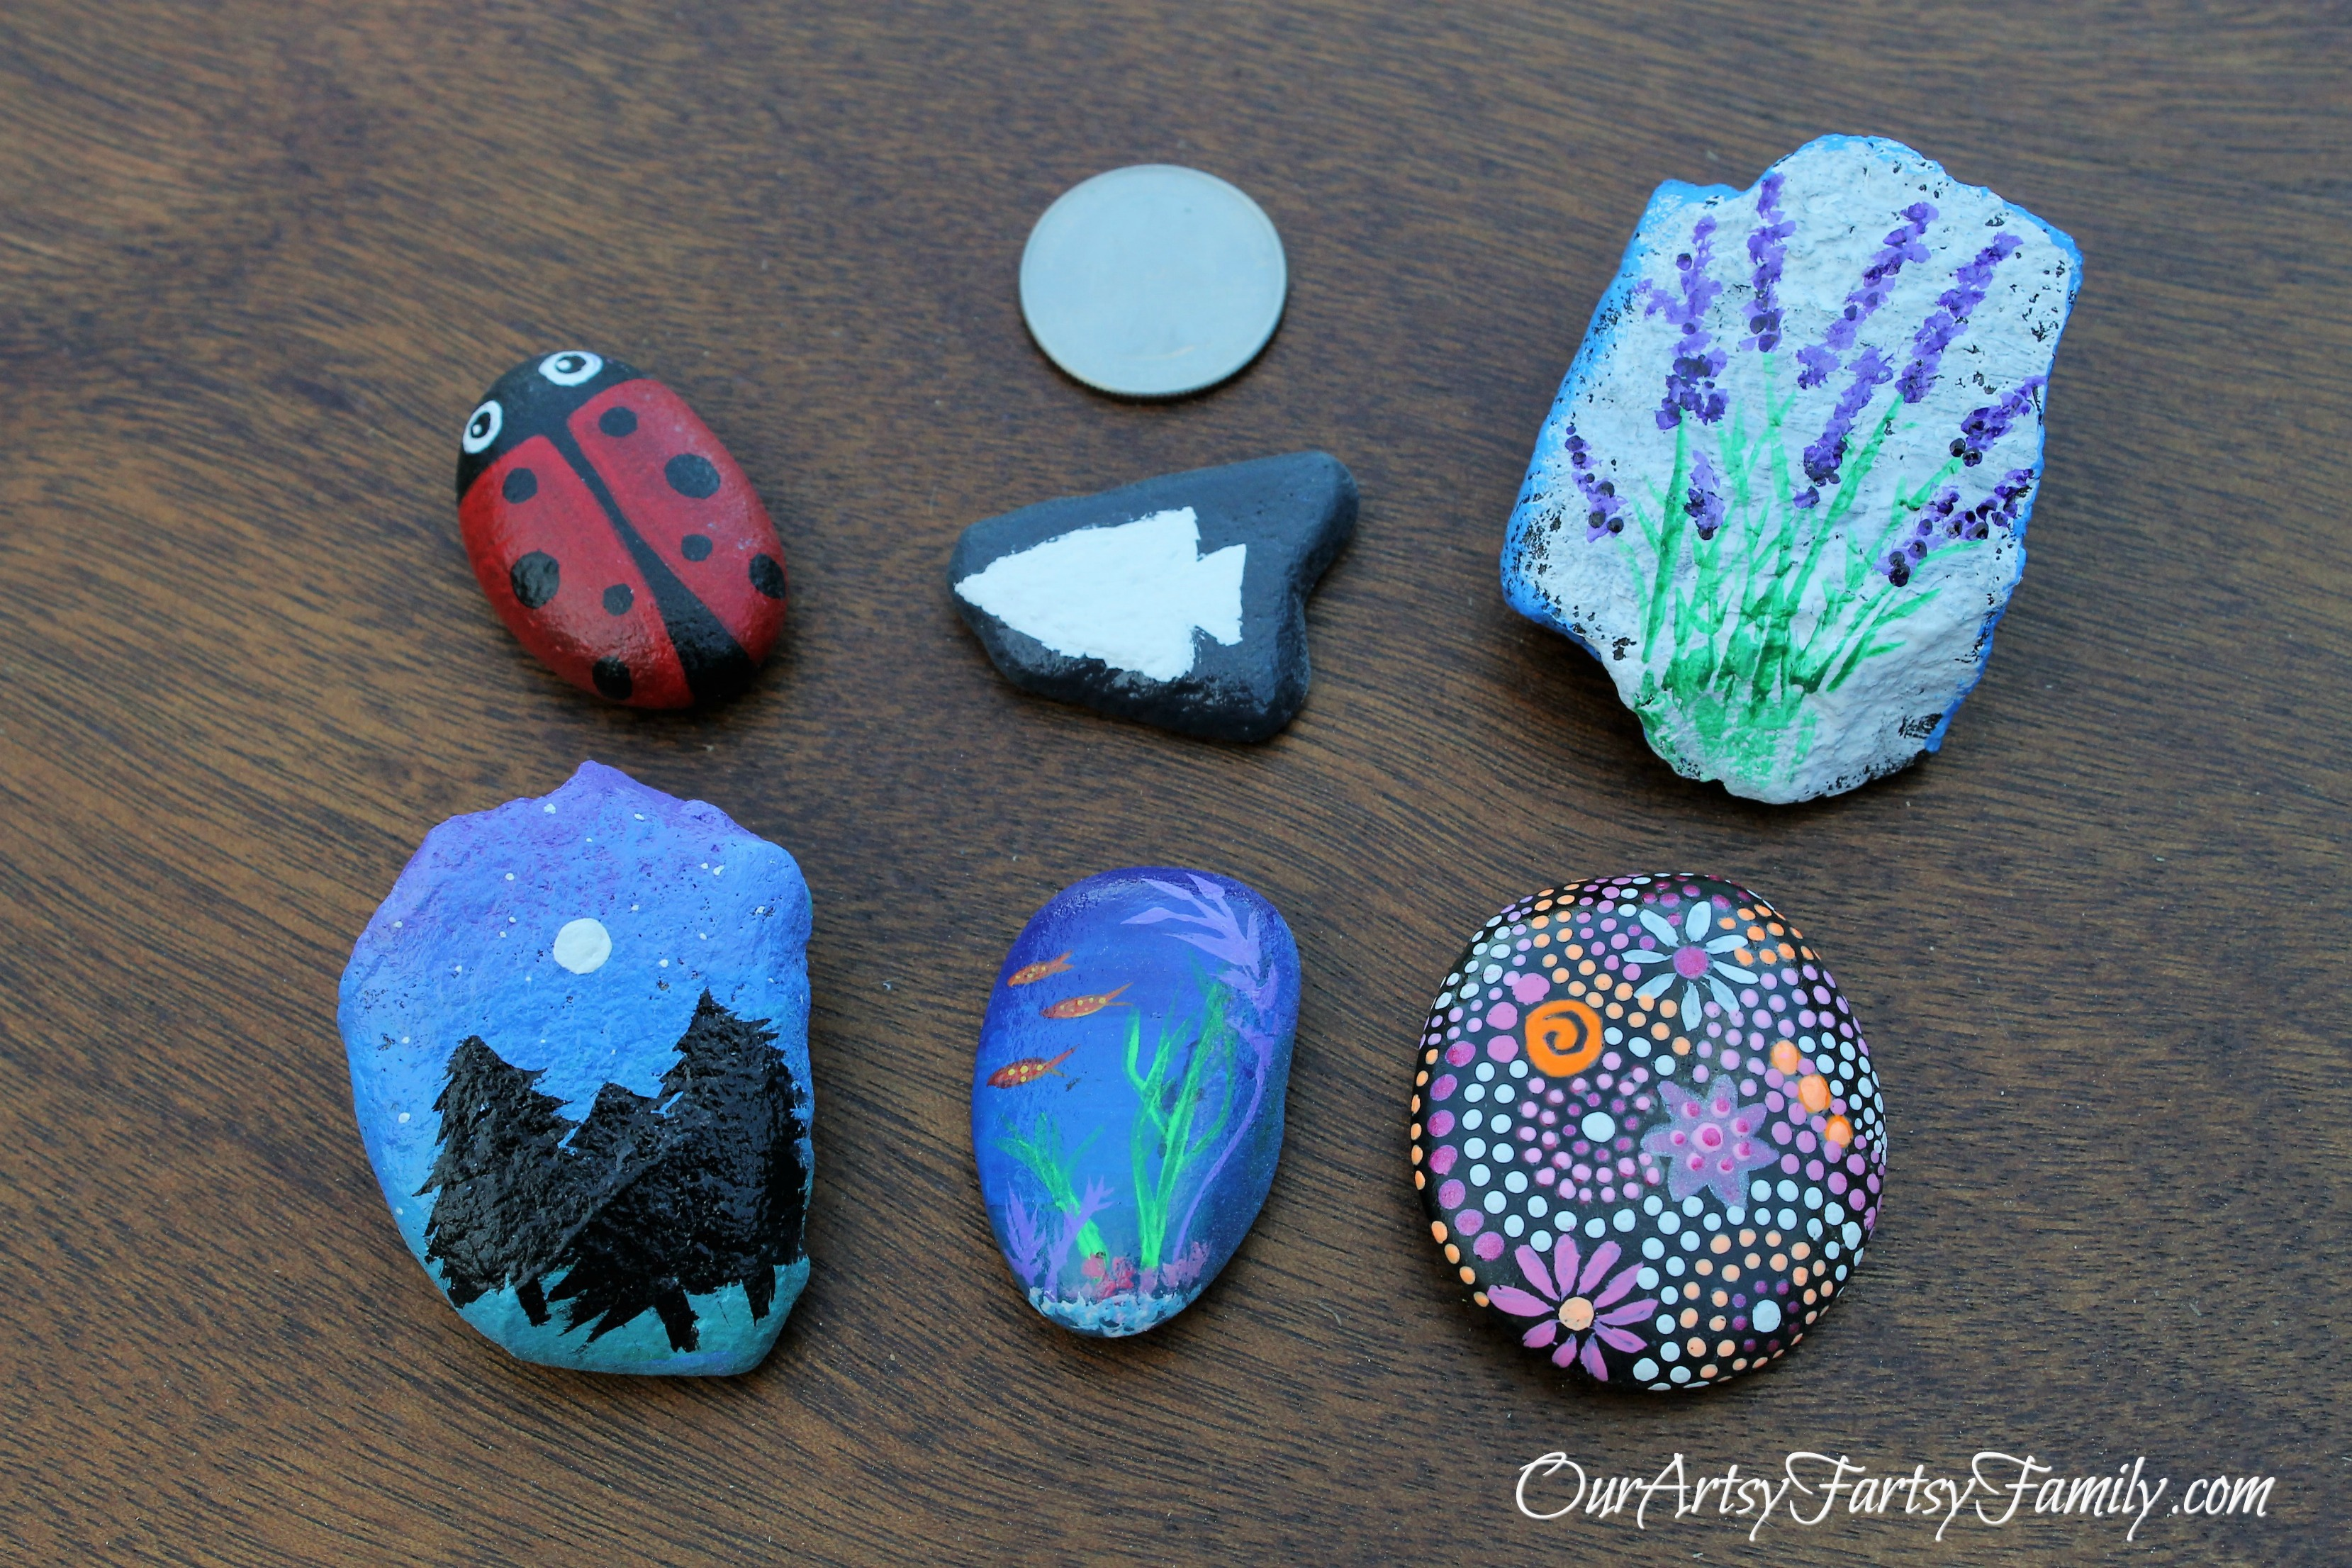 7-20-2017 Painted Rocks IMG_6379 Artsy